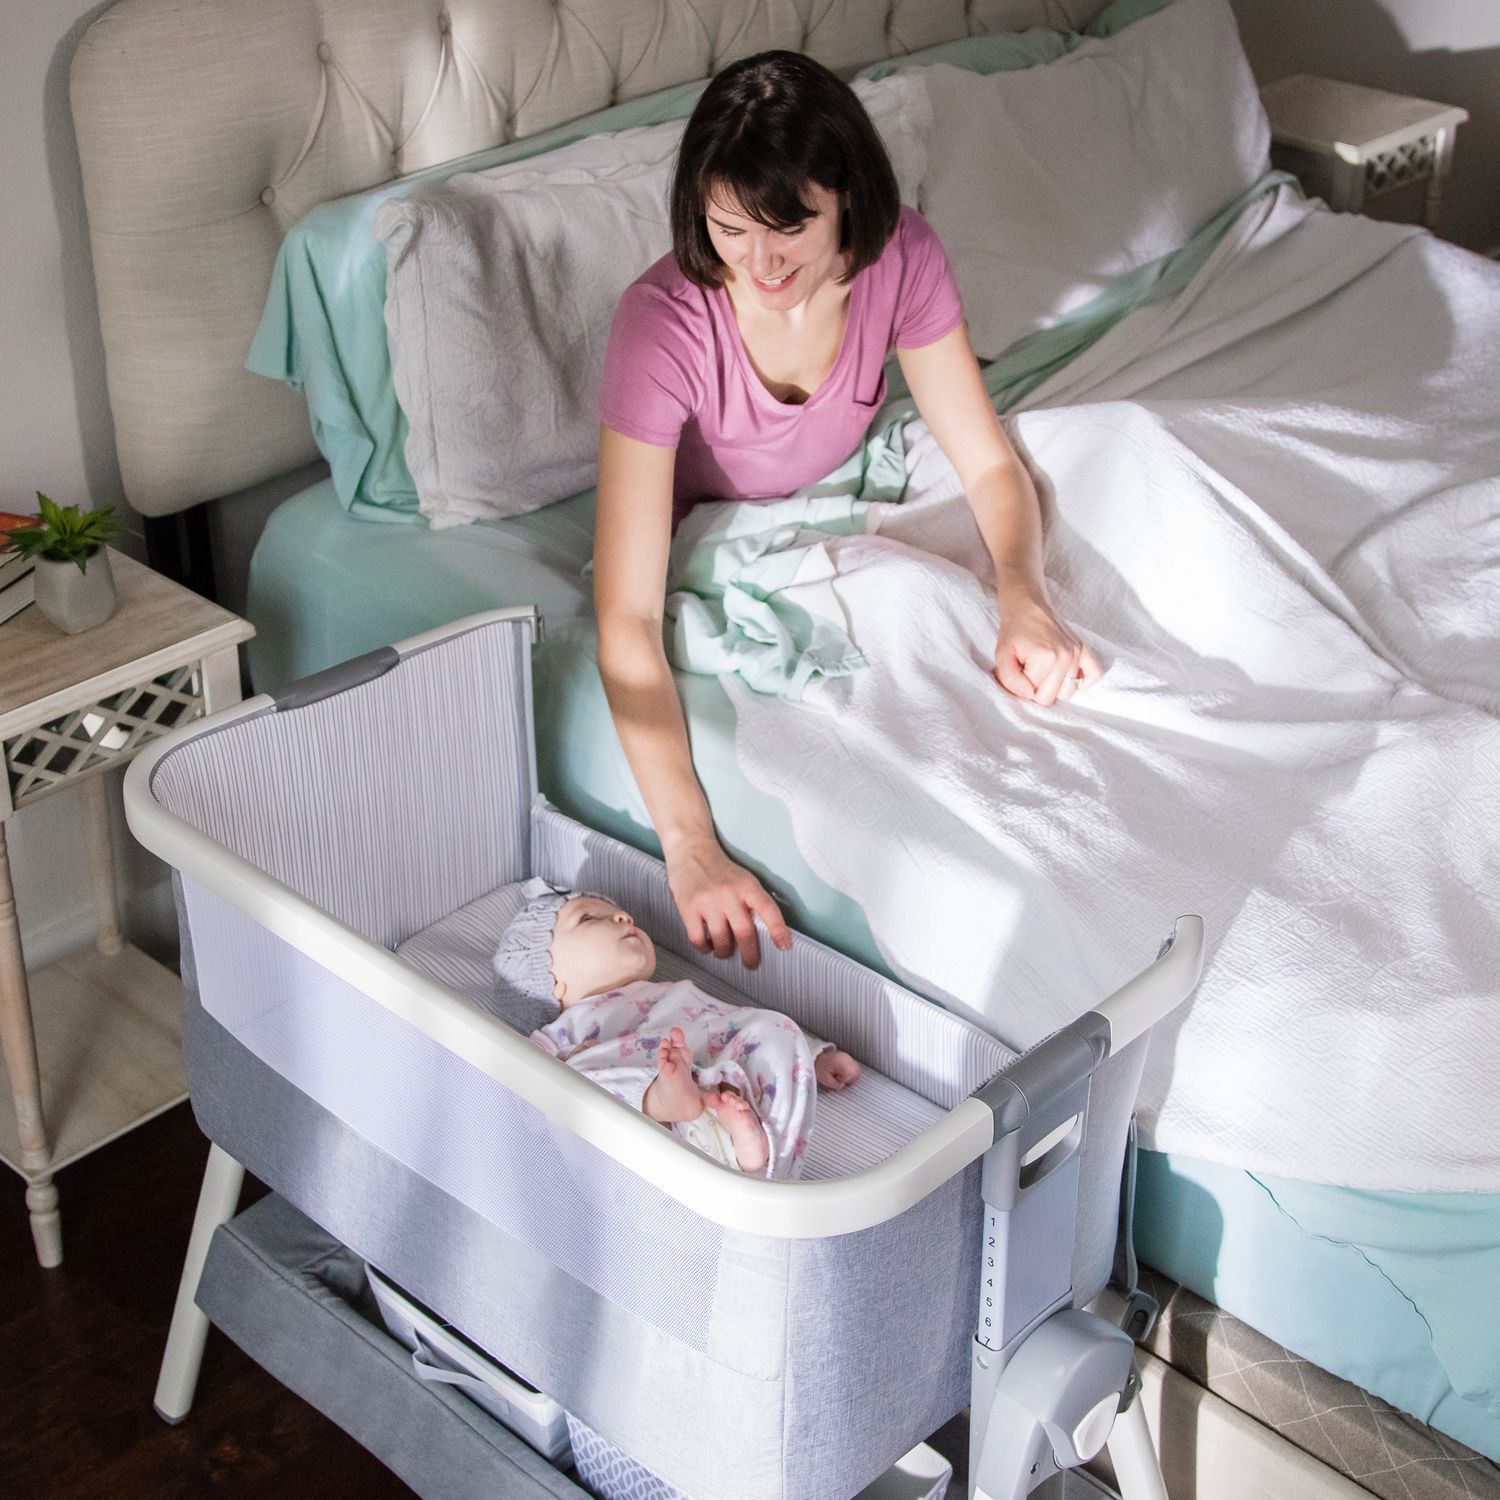 Co Sleeping & Bed Side Crib For Baby in 2020 Co